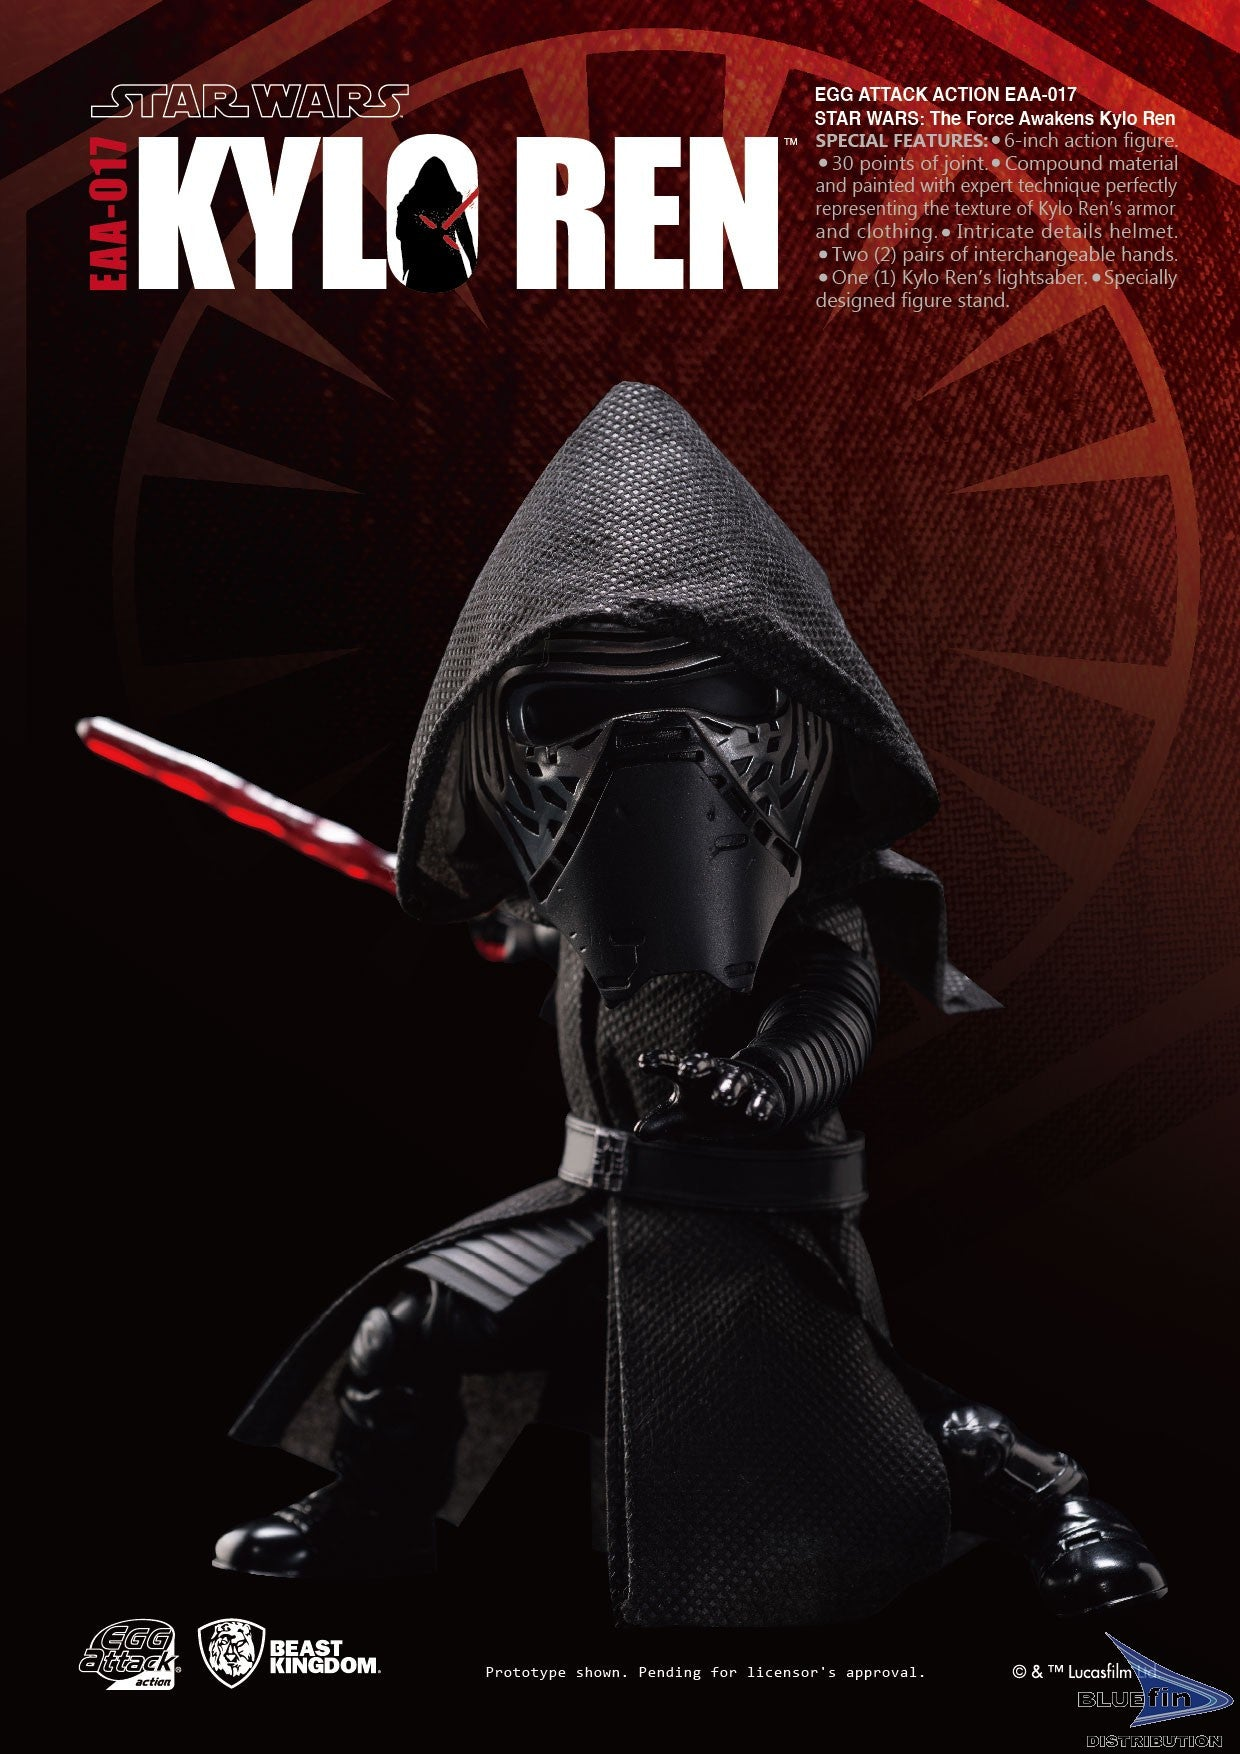 Beast Kingdom EAA-017 Kylo Ren Egg Attack Action BKT10707